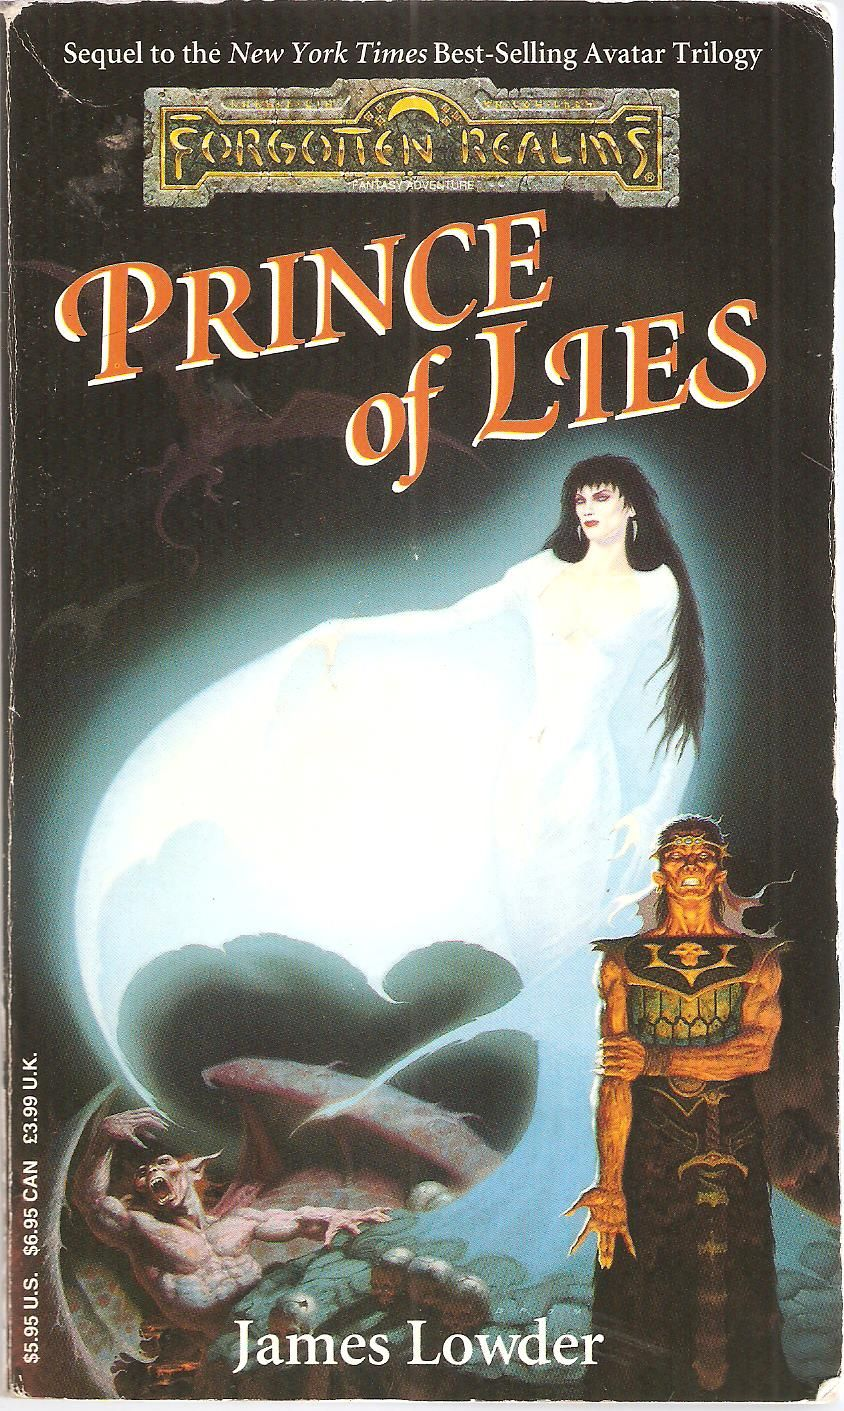 Prince of Lies  by James Lowder  | Fogotten Realms | Forgotten